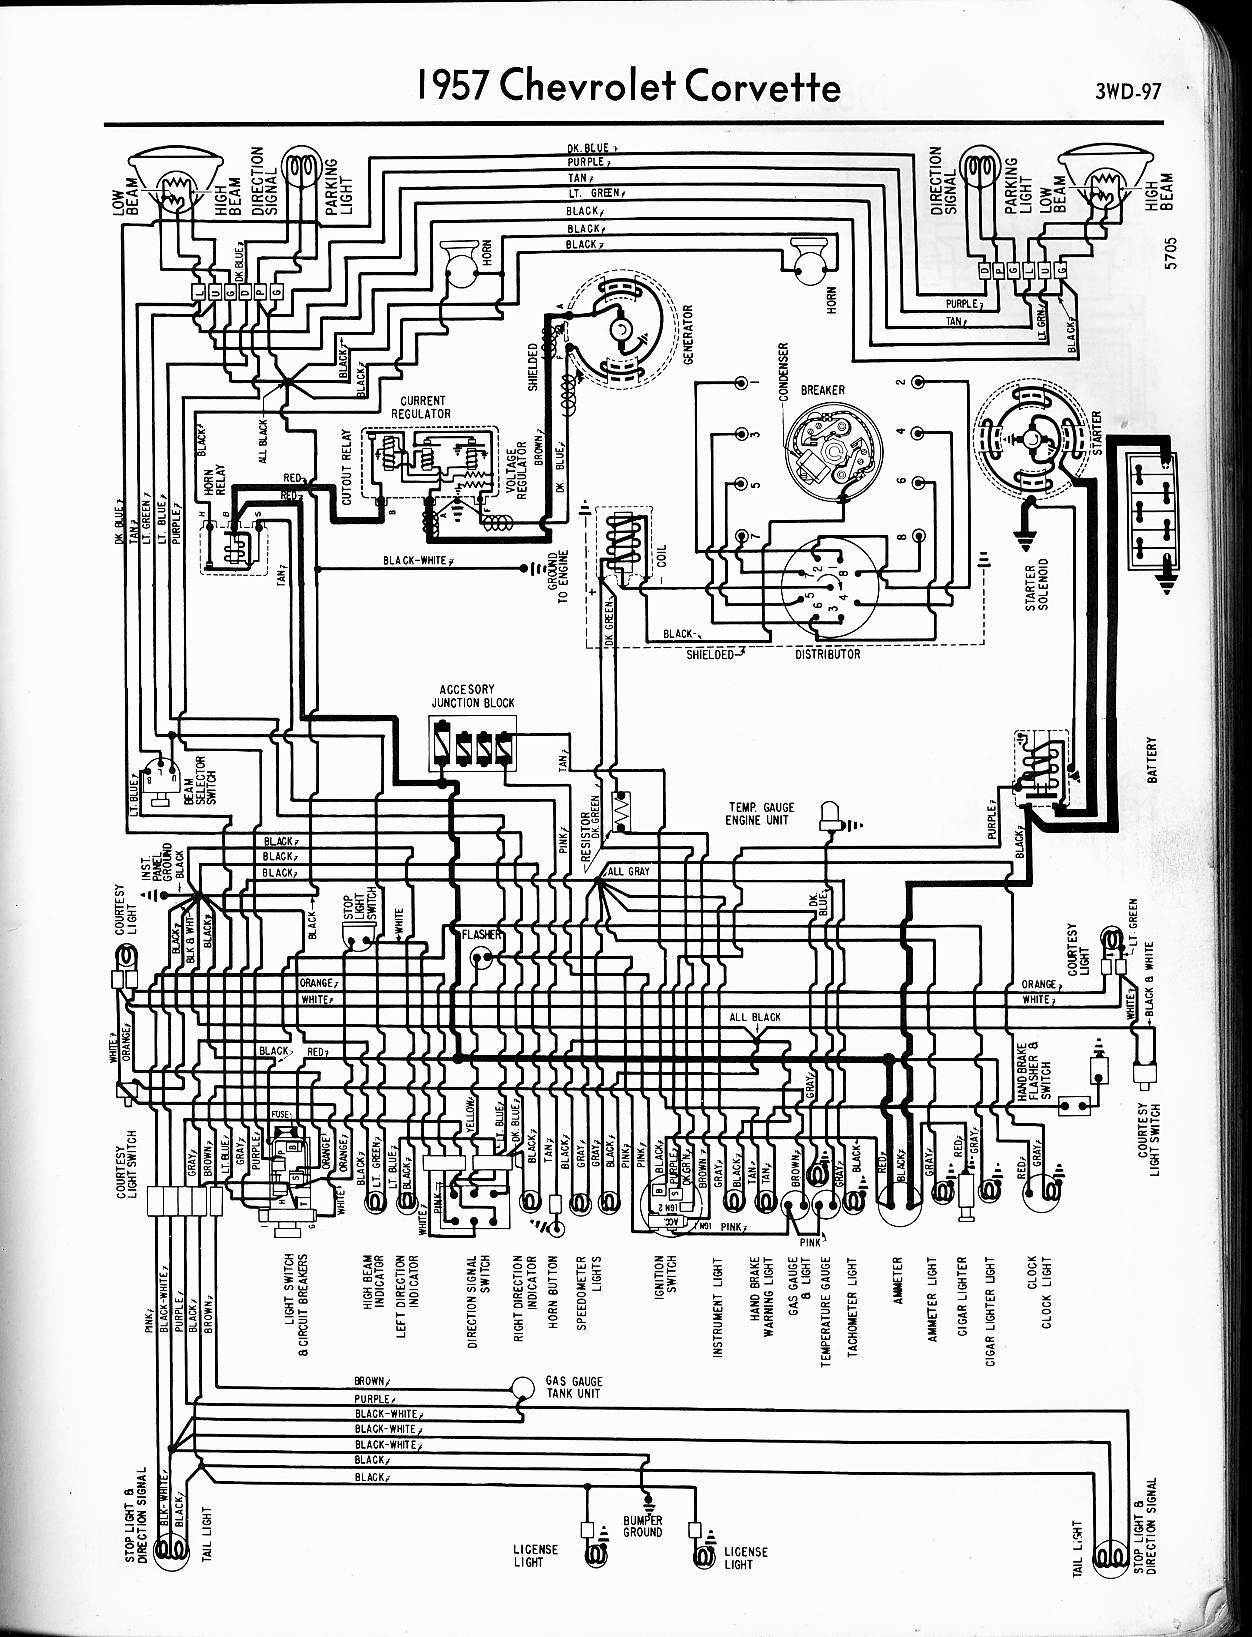 MWireChev57_3WD 097 57 65 chevy wiring diagrams 65 chevy truck wiring diagram at alyssarenee.co